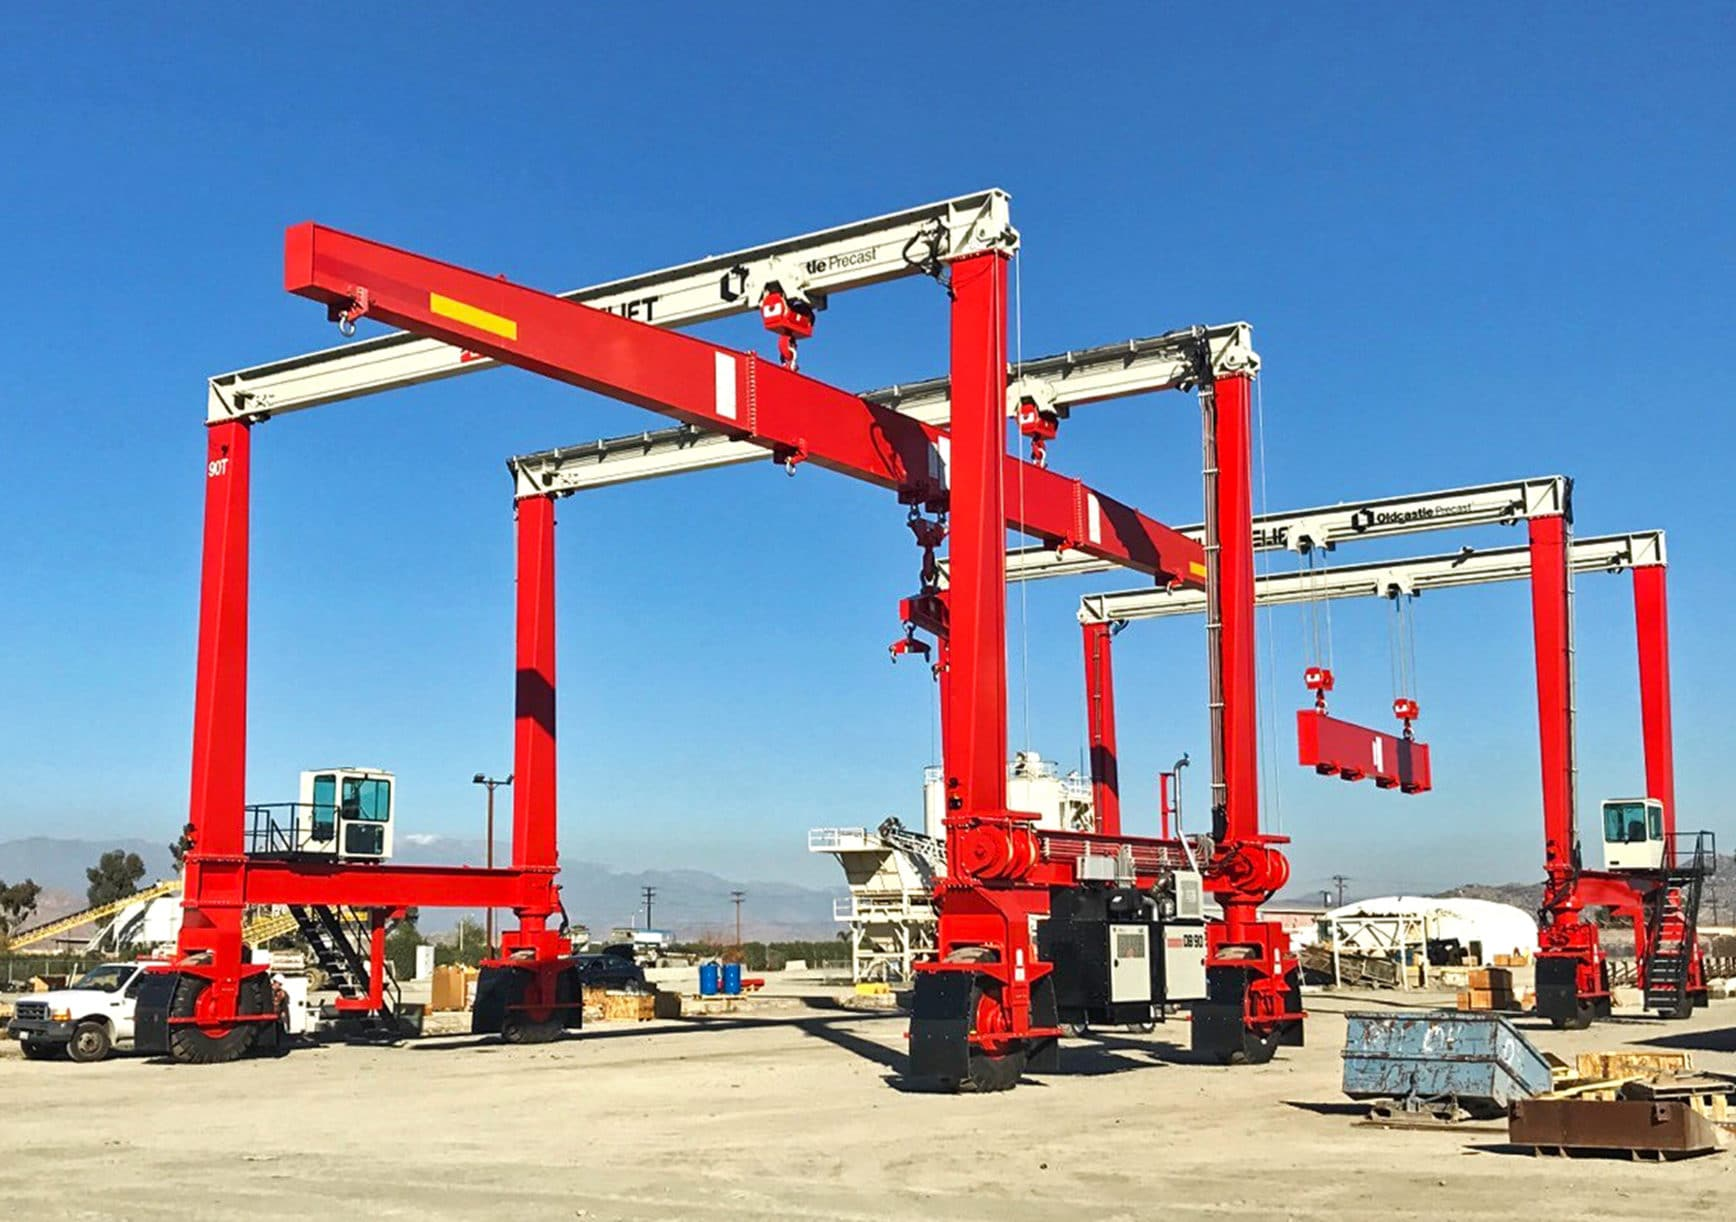 Shuttlelift DB 90 Gantry Cranes Give Oldcastle Precast Long